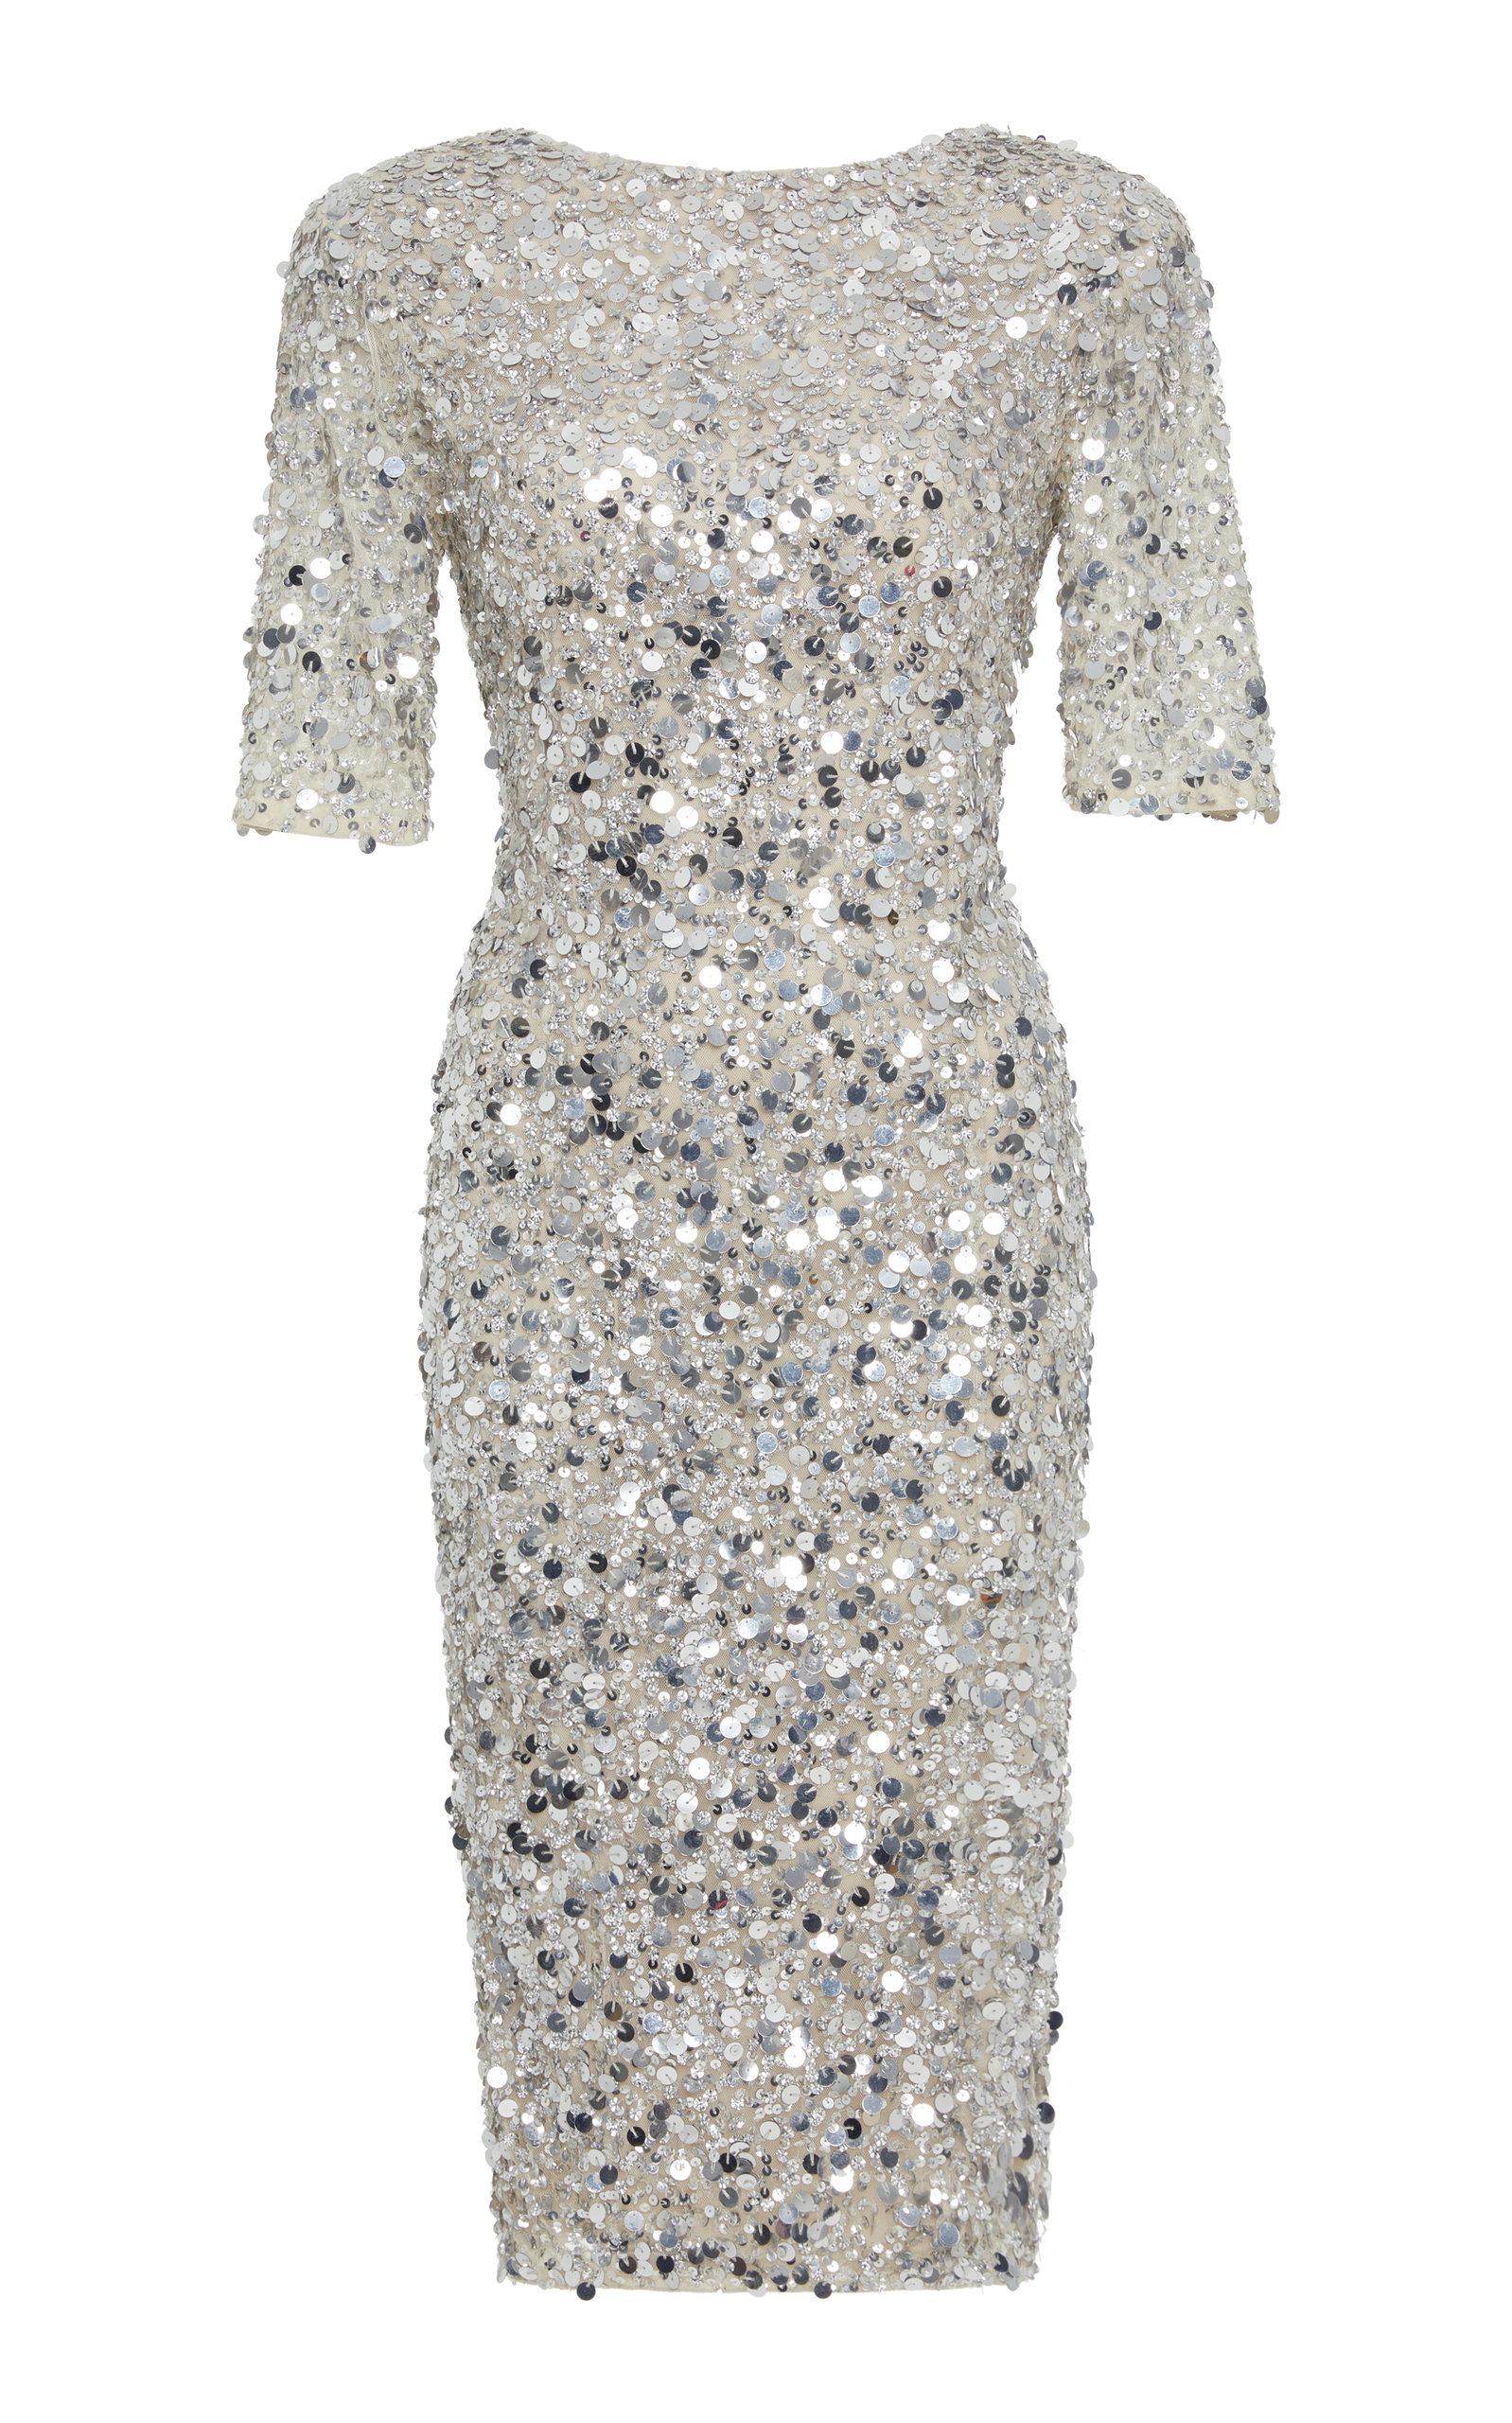 RACHEL GILBERT ZOWIE SEQUIN DRESS